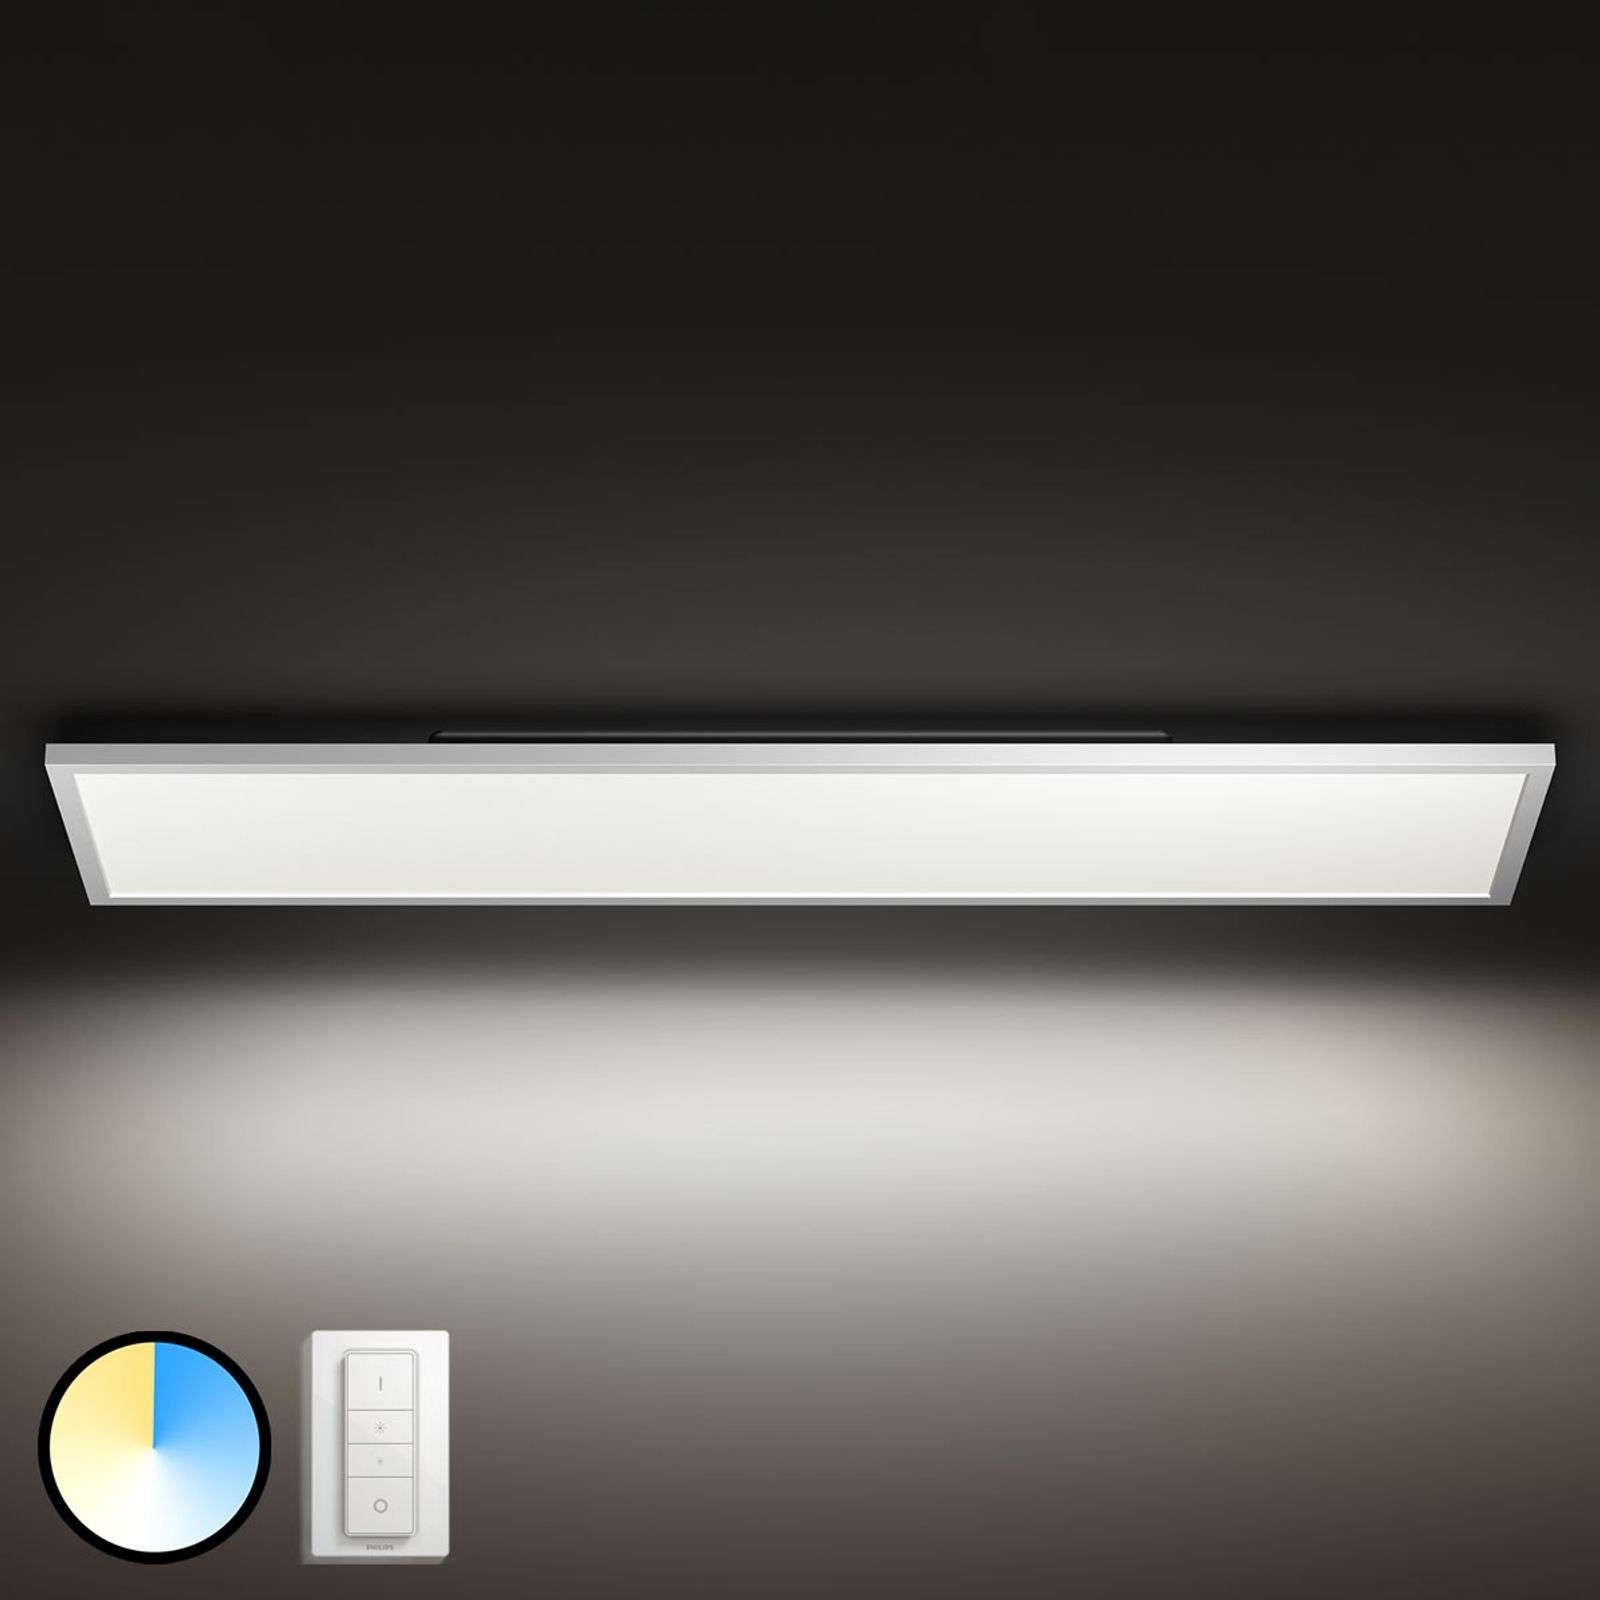 Panel Philips Hue Aurelle rectangular, 120 x 30 cm